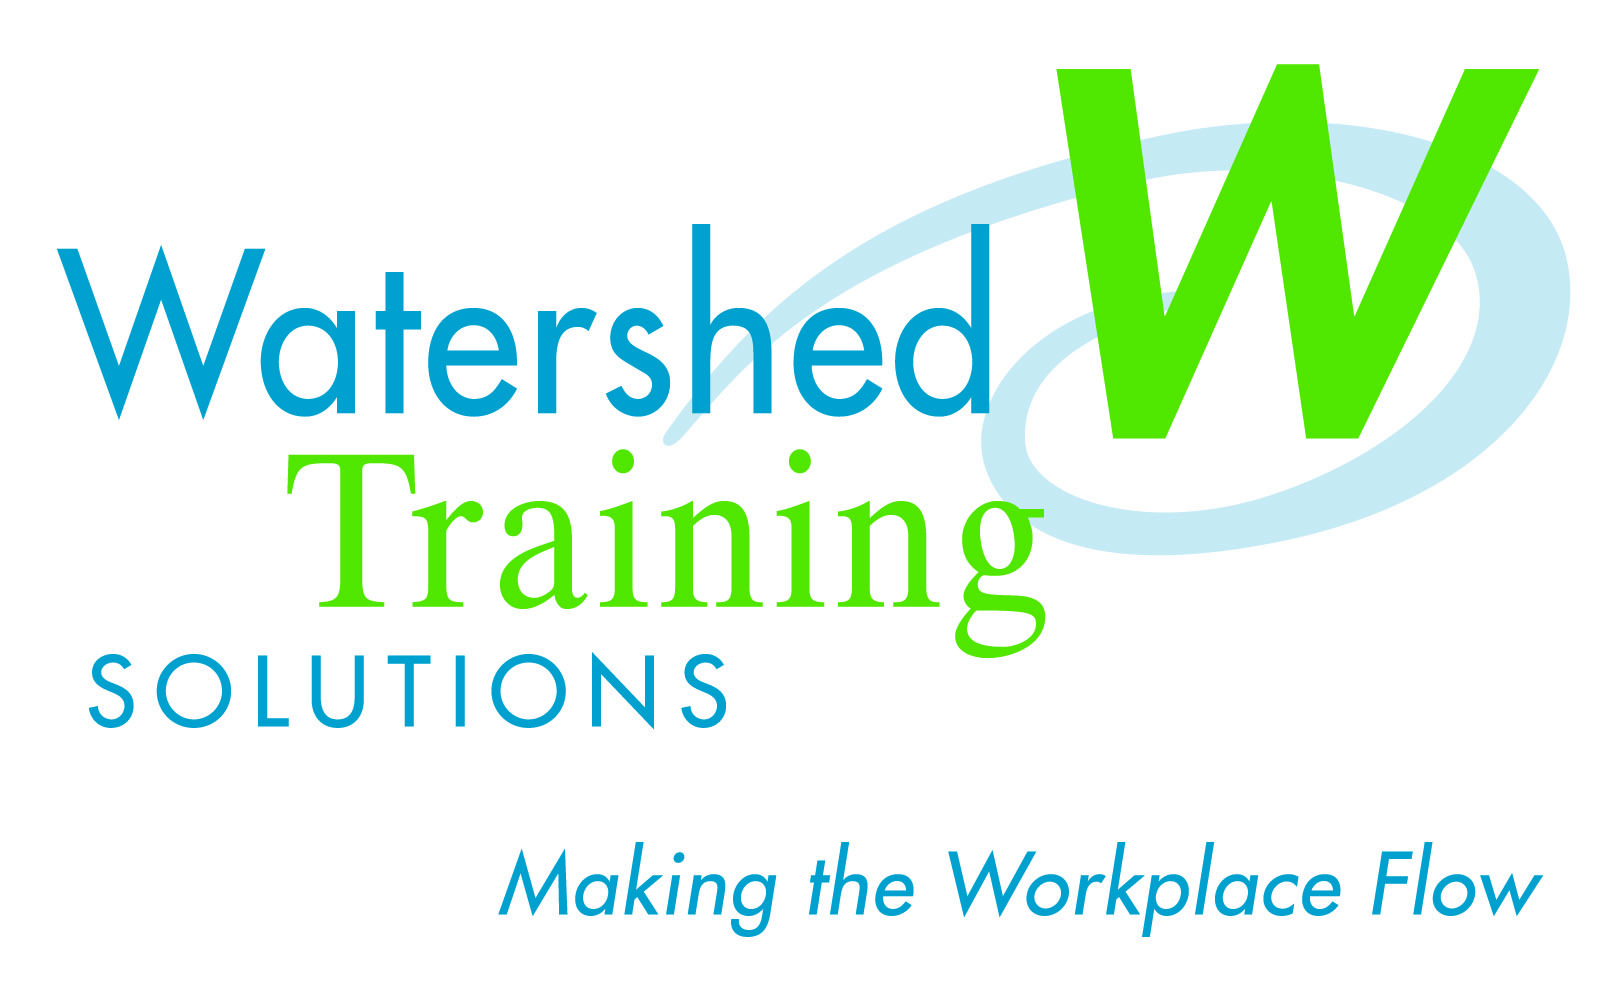 Watershed Training Solutions